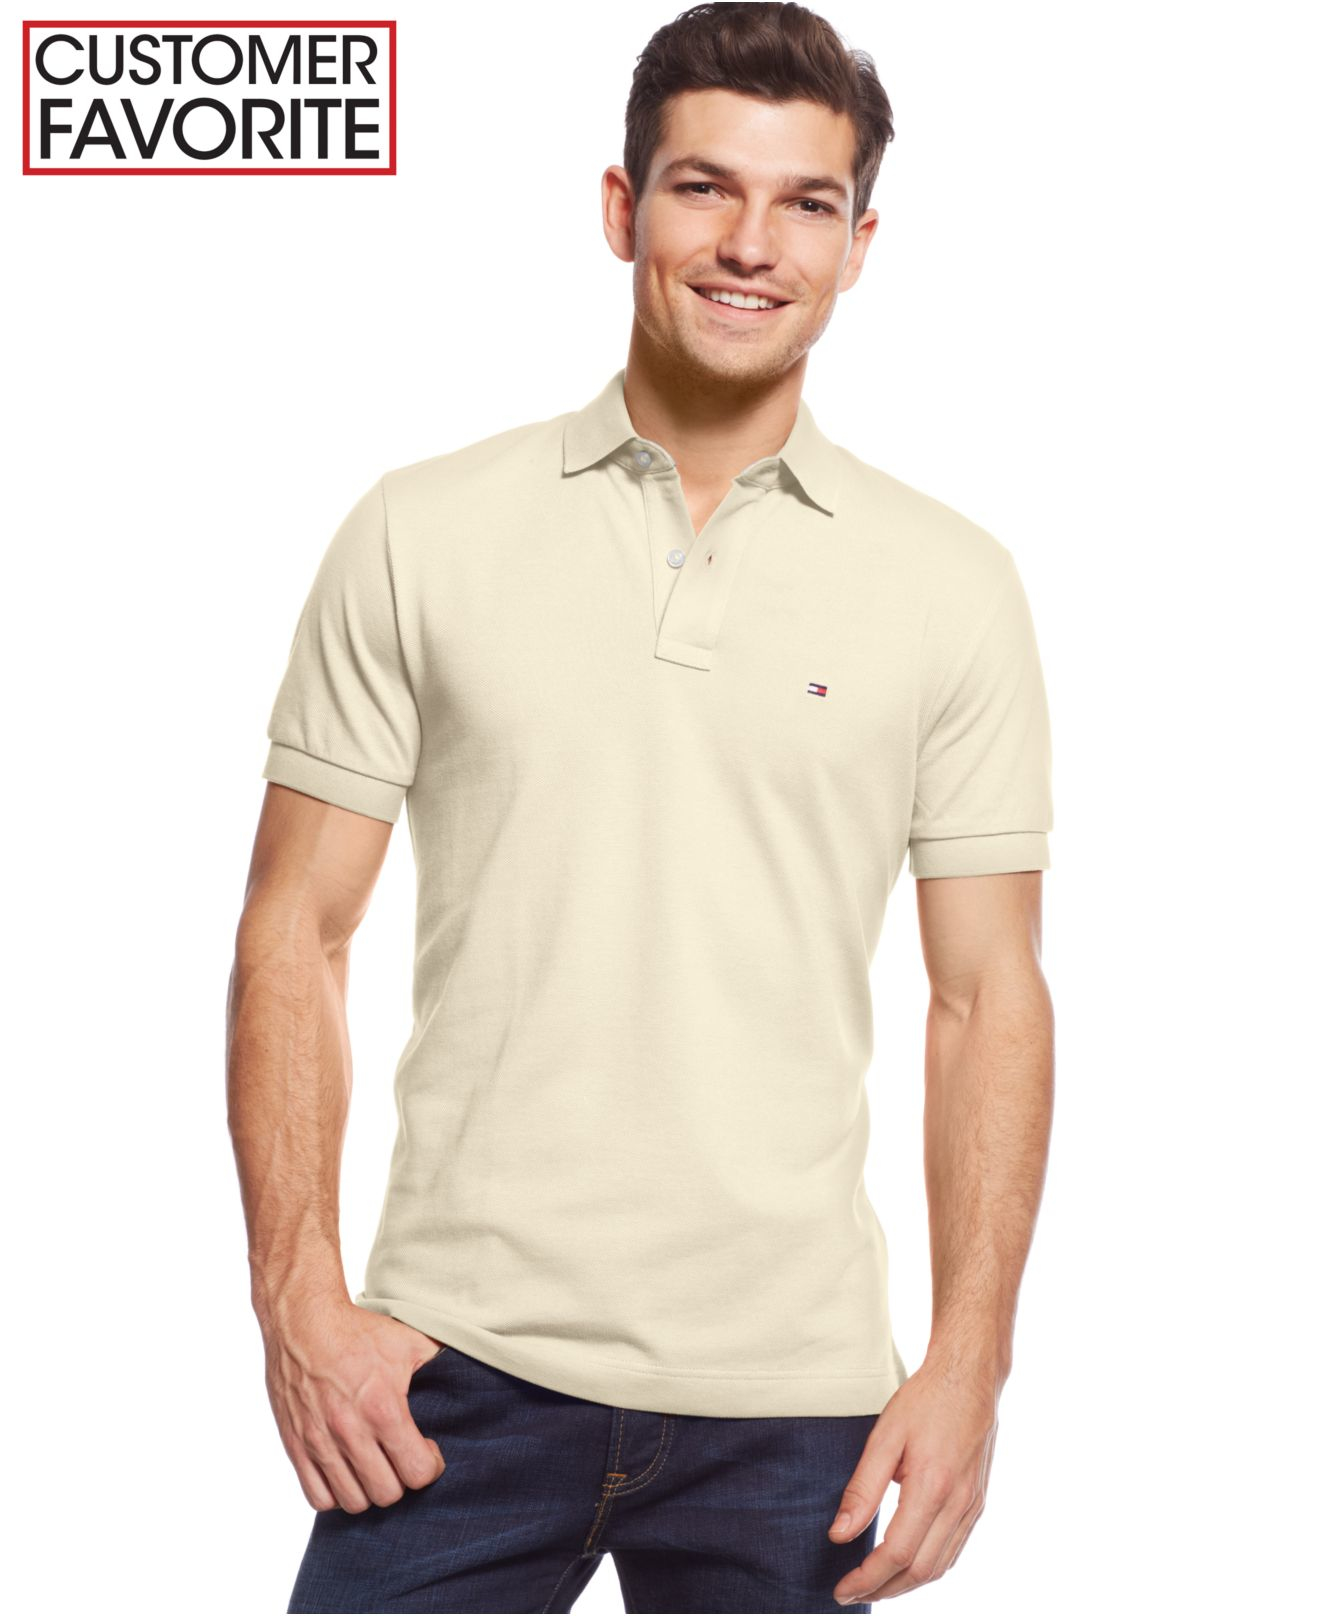 2cf433b3 Tommy Hilfiger Custom-fit Ivy Polo in White for Men - Lyst